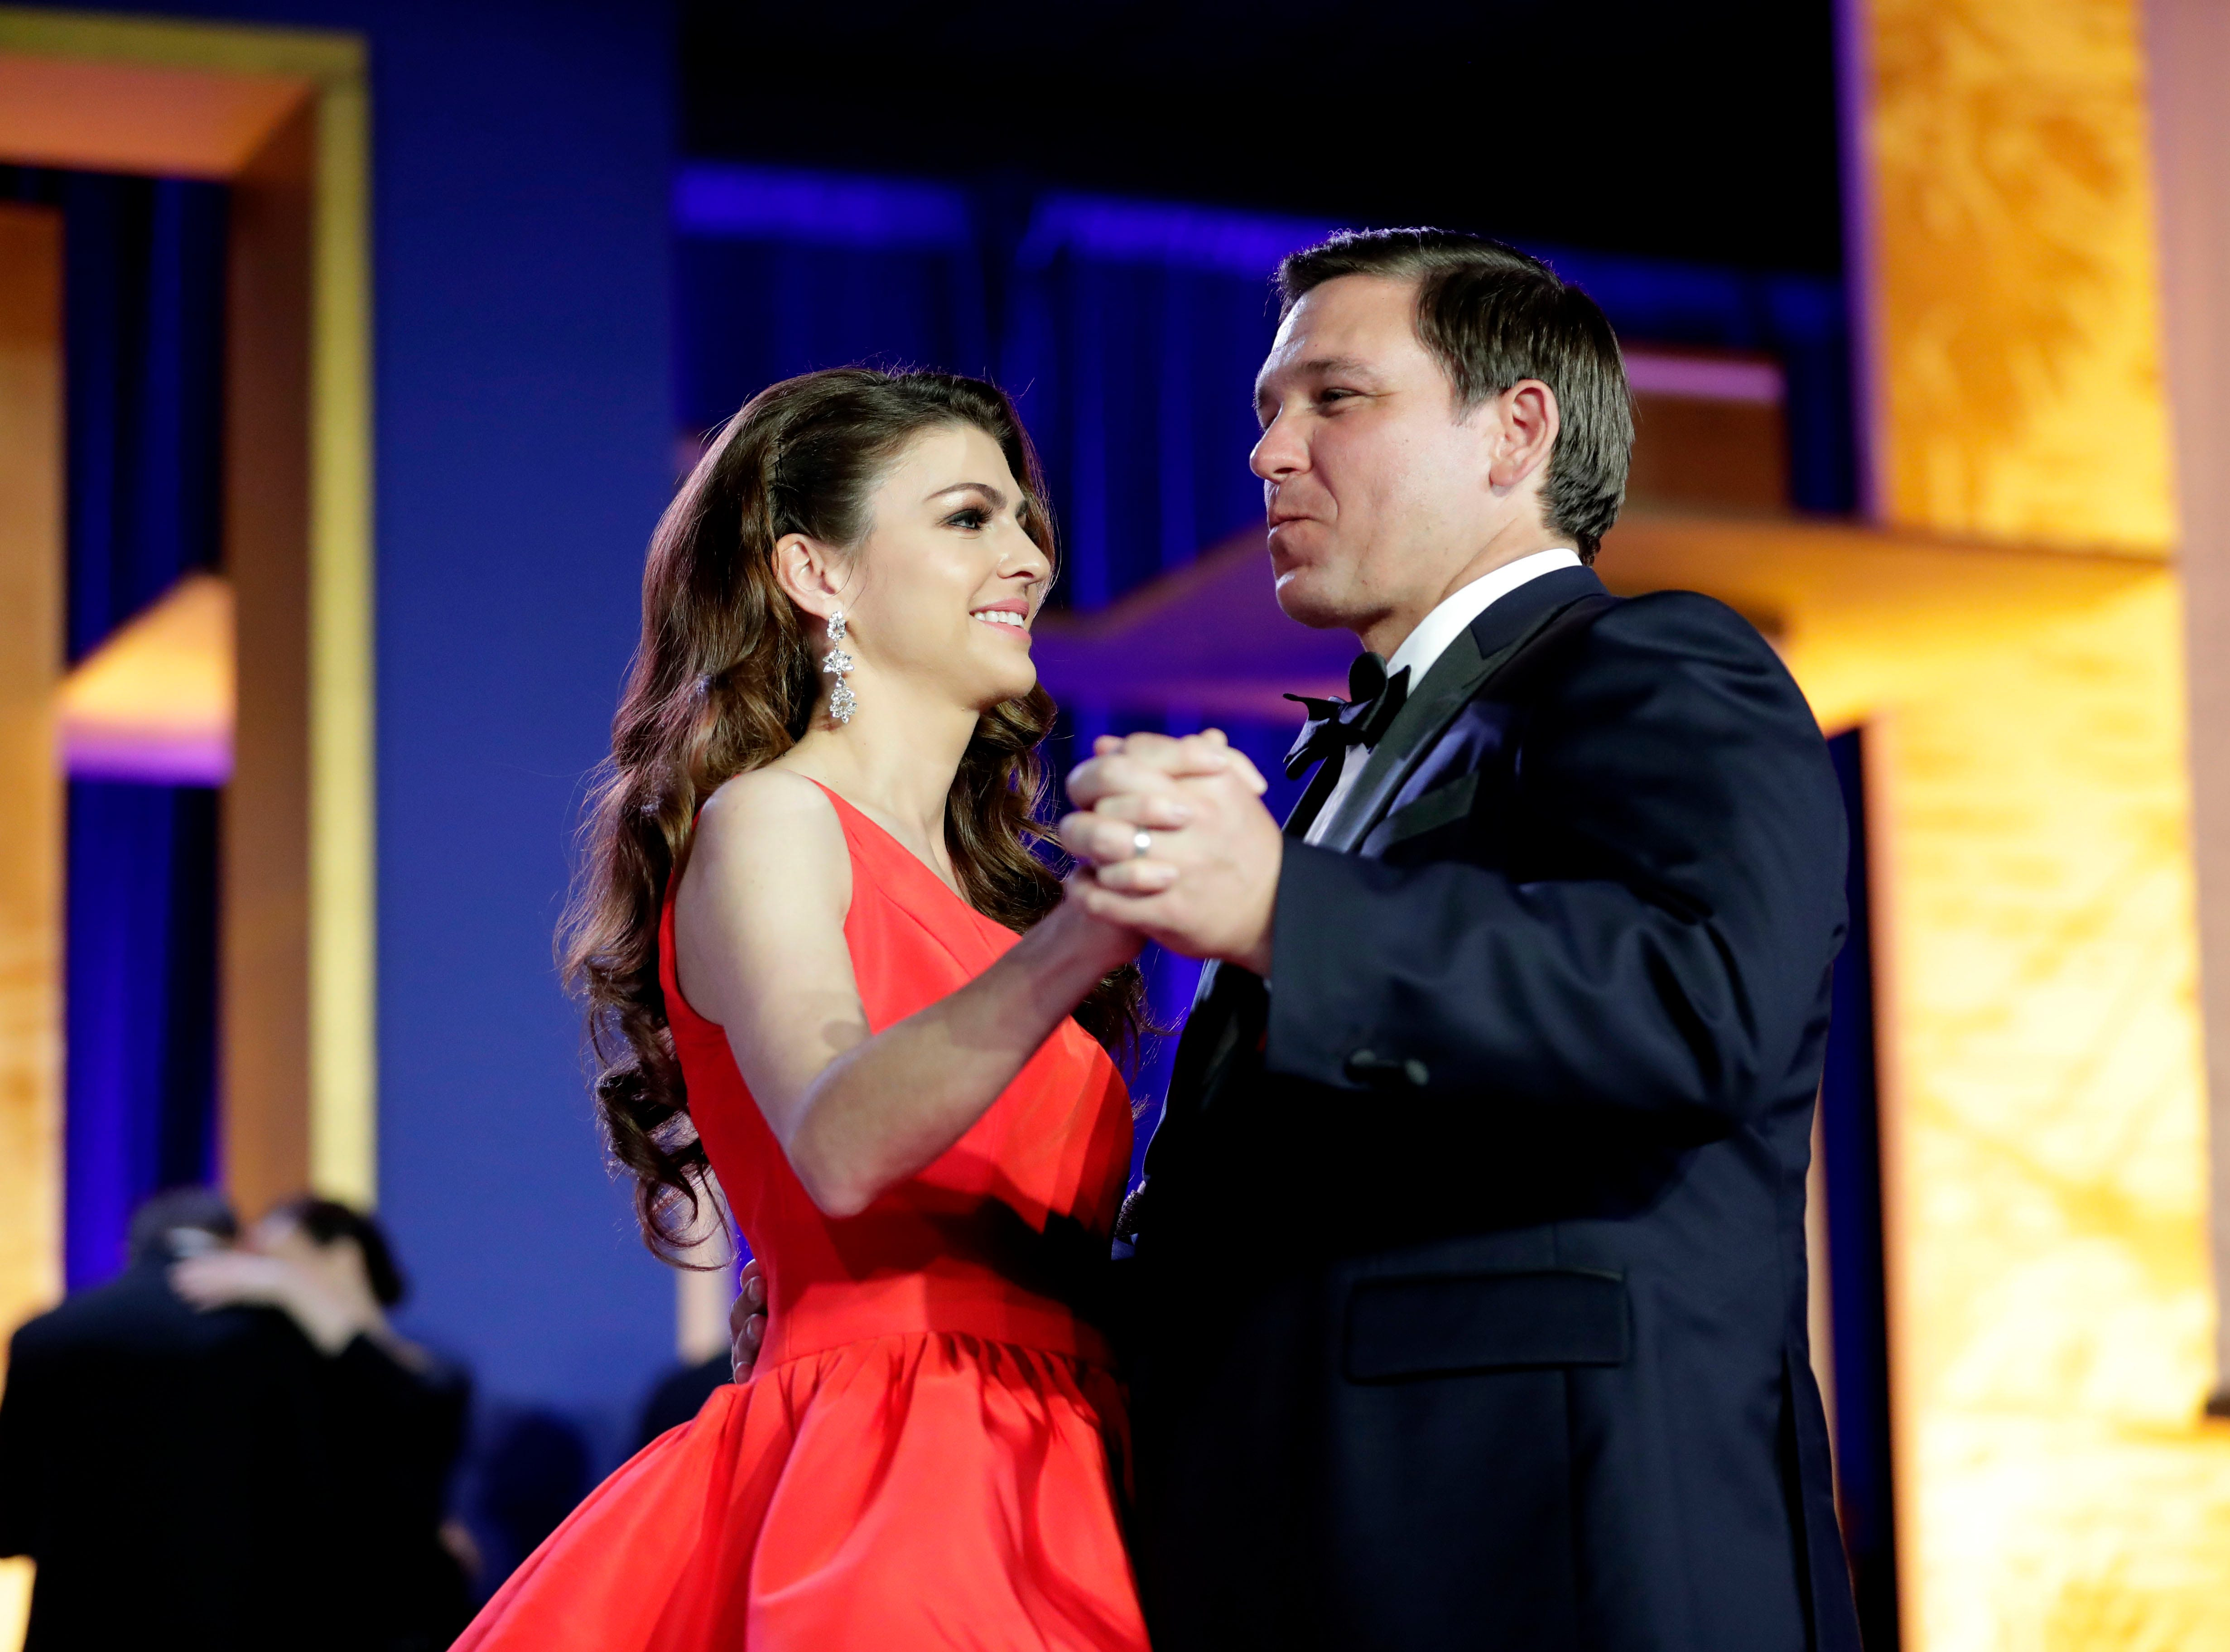 Hundreds of guests from all over Florida attend Florida's 46th Governor's Inaugural Ball at the Tucker Civic Center, Tuesday, Jan. 8, 2019. First lady Casey DeSantis and her husband, Gov. Ron DeSantis gracefully dance on center stage.